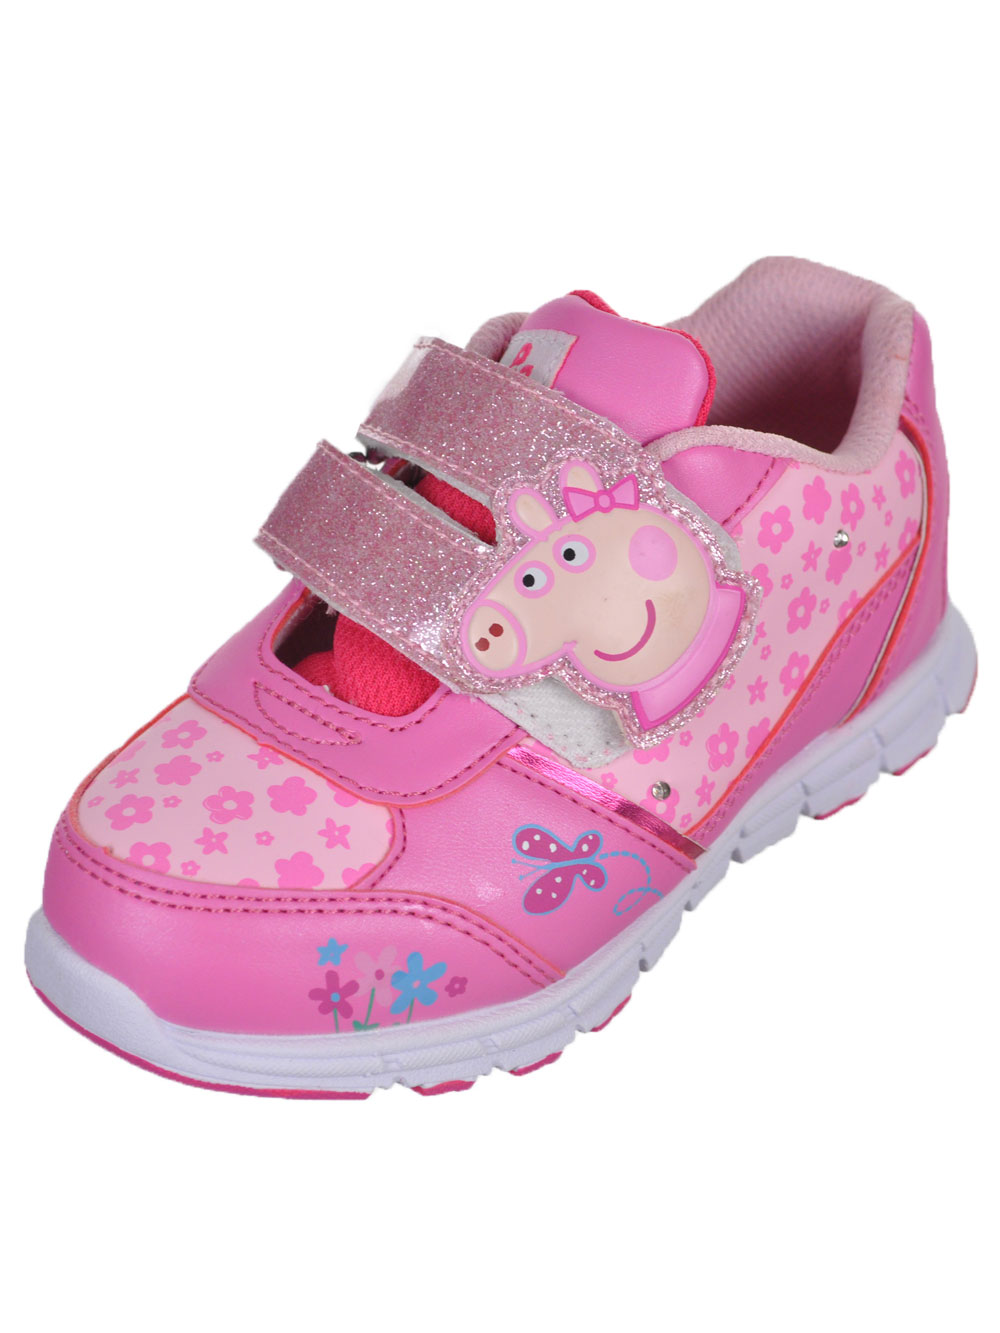 Image of Peppa Pig Girls Piggy Straps LightUp Sneakers Toddler Sizes 5  10  pink 10 toddler